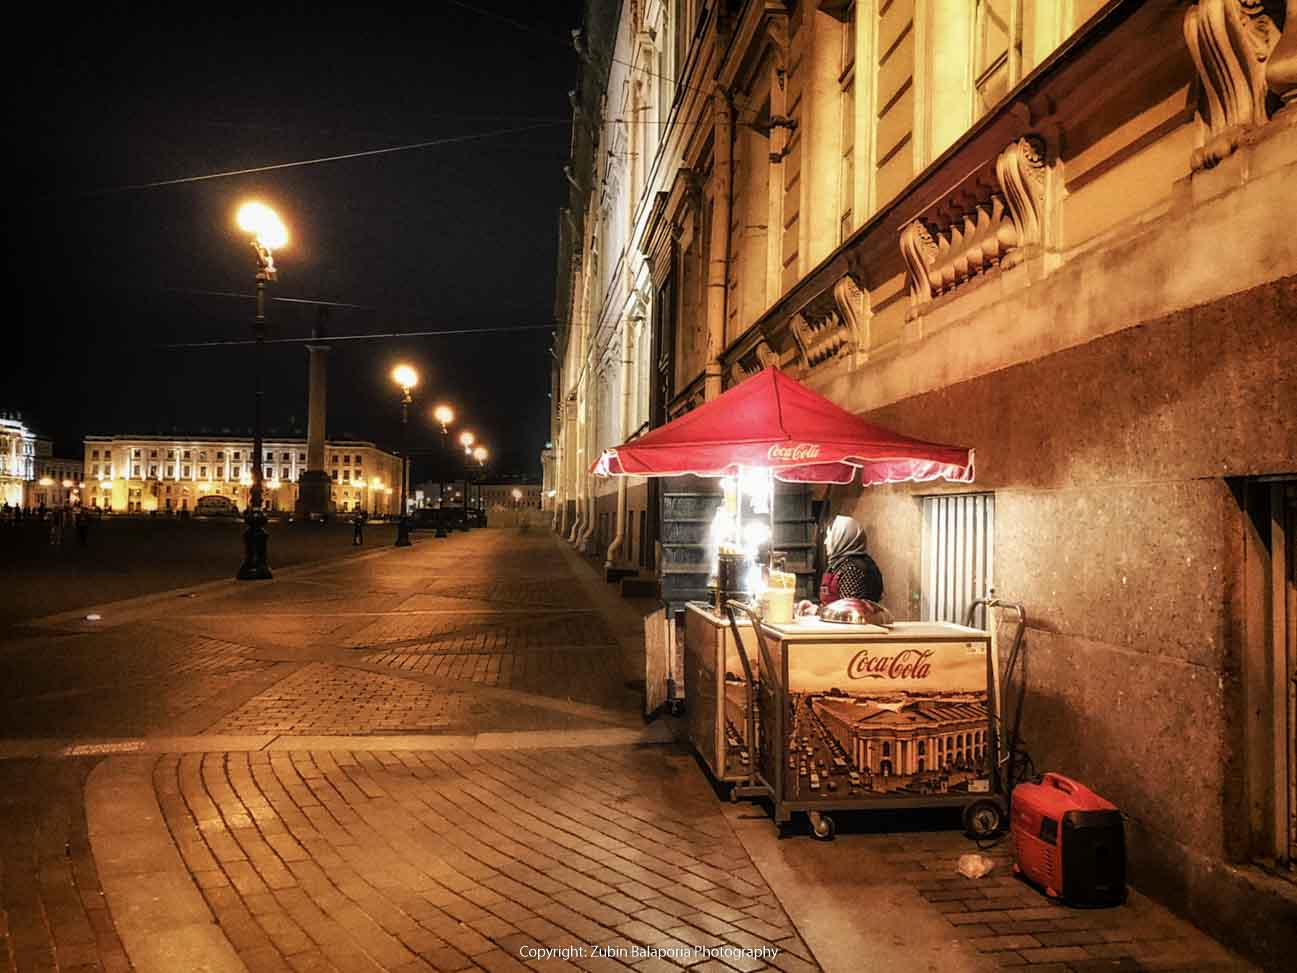 The Vendor from St Petersburg